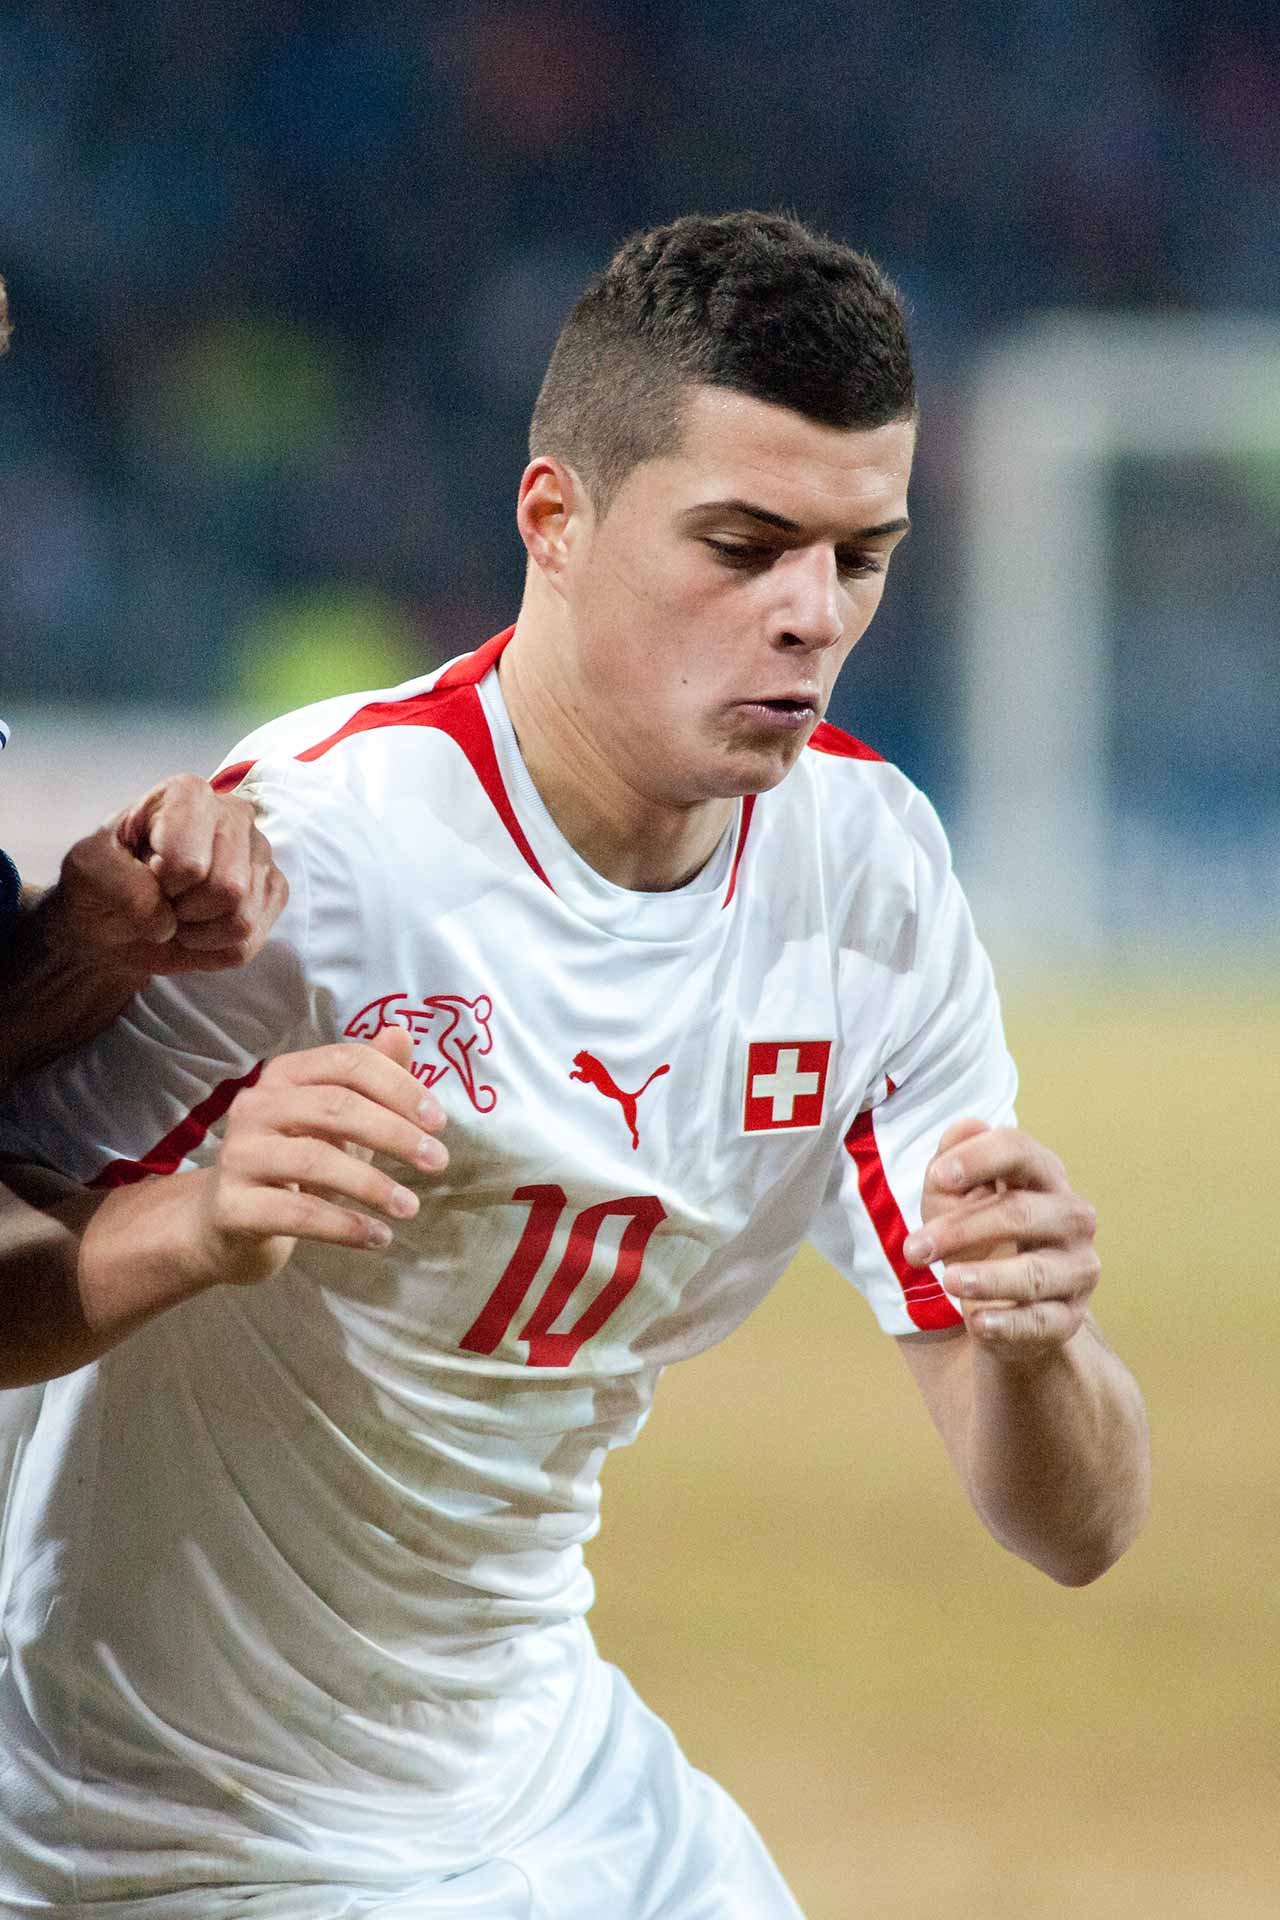 Granit Xhaka in Switzerland vs. Argentina, 29th February 2012 (Photo: Fanny Schertzer / cropped version)